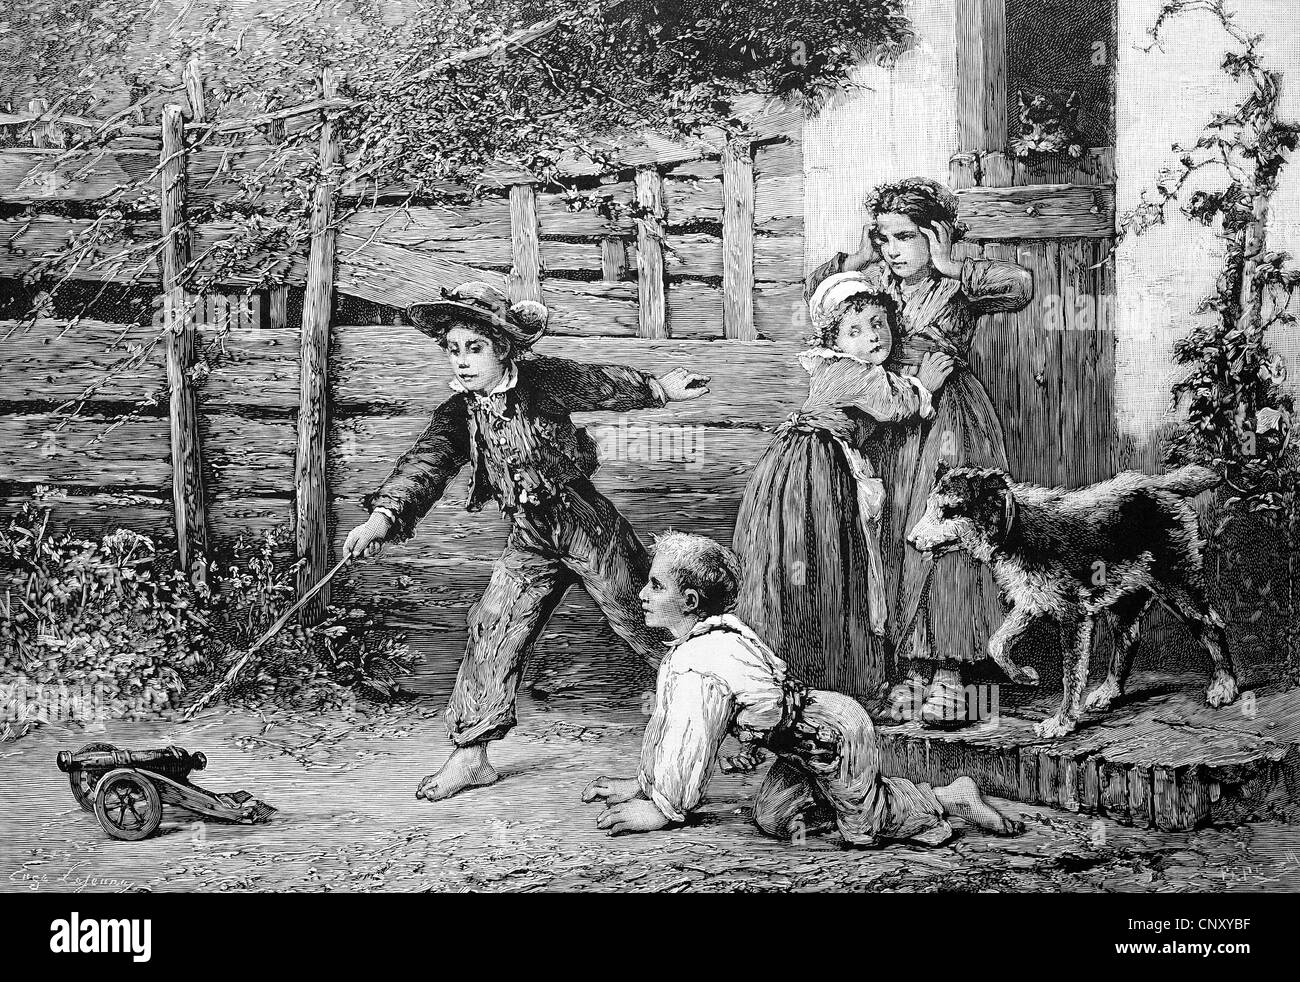 Whalers in action wood engraving published in 1855 stock illustration - Children Playing With A Toy Cannon Historic Wood Engraving About 1888 Stock Image